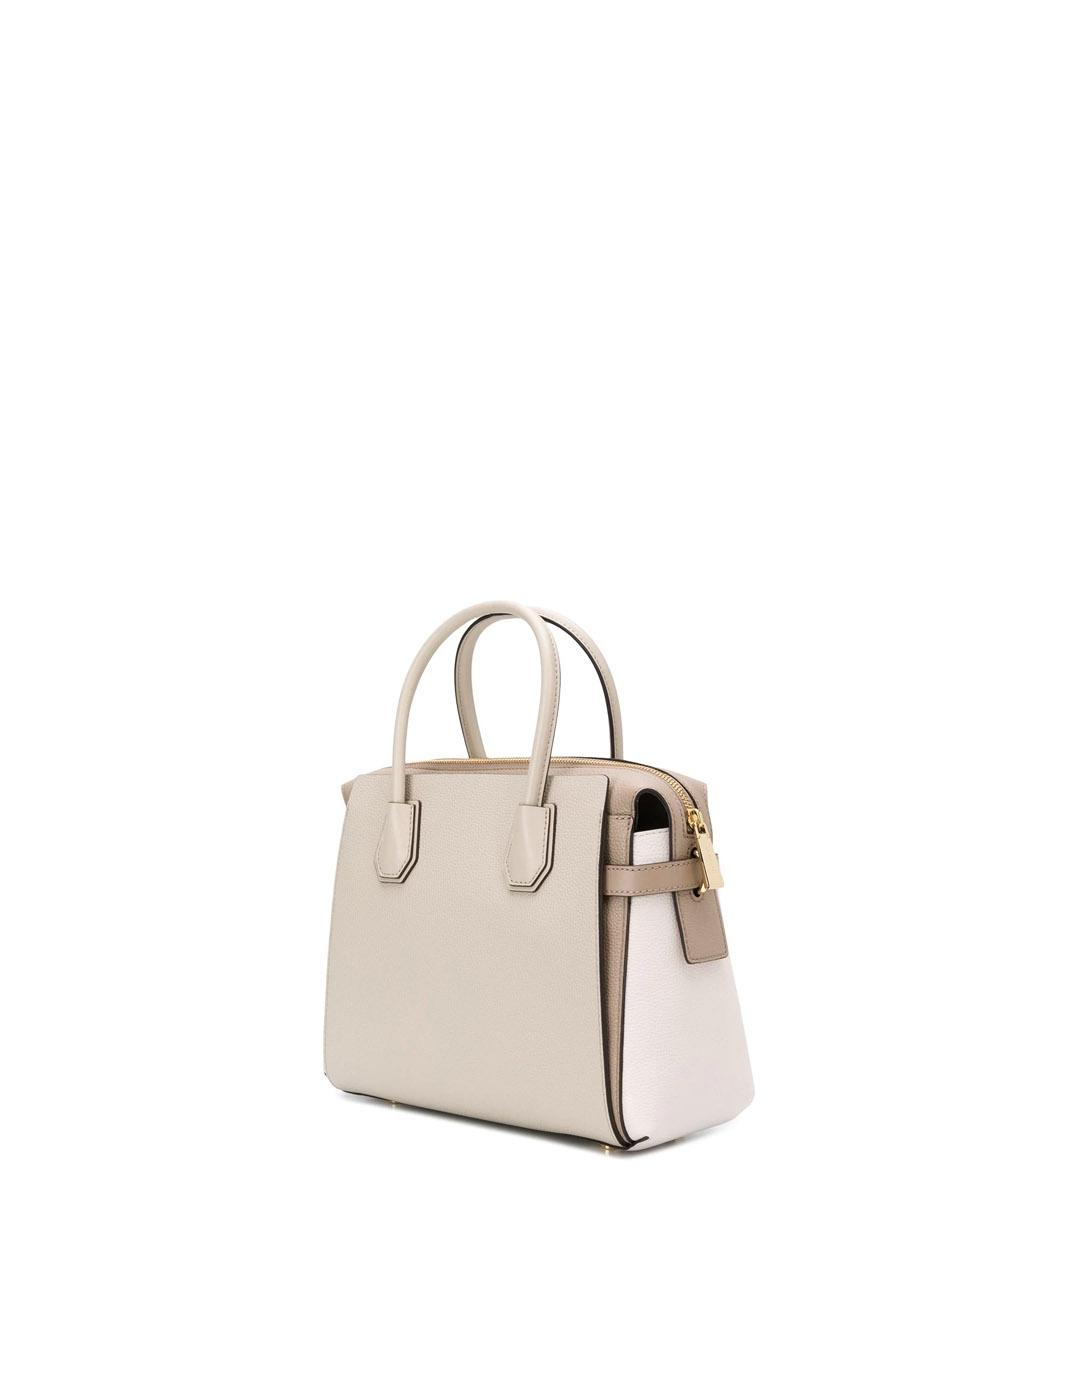 Bolso Michael Kors camel Mercer Medium Tricolor Pebbled